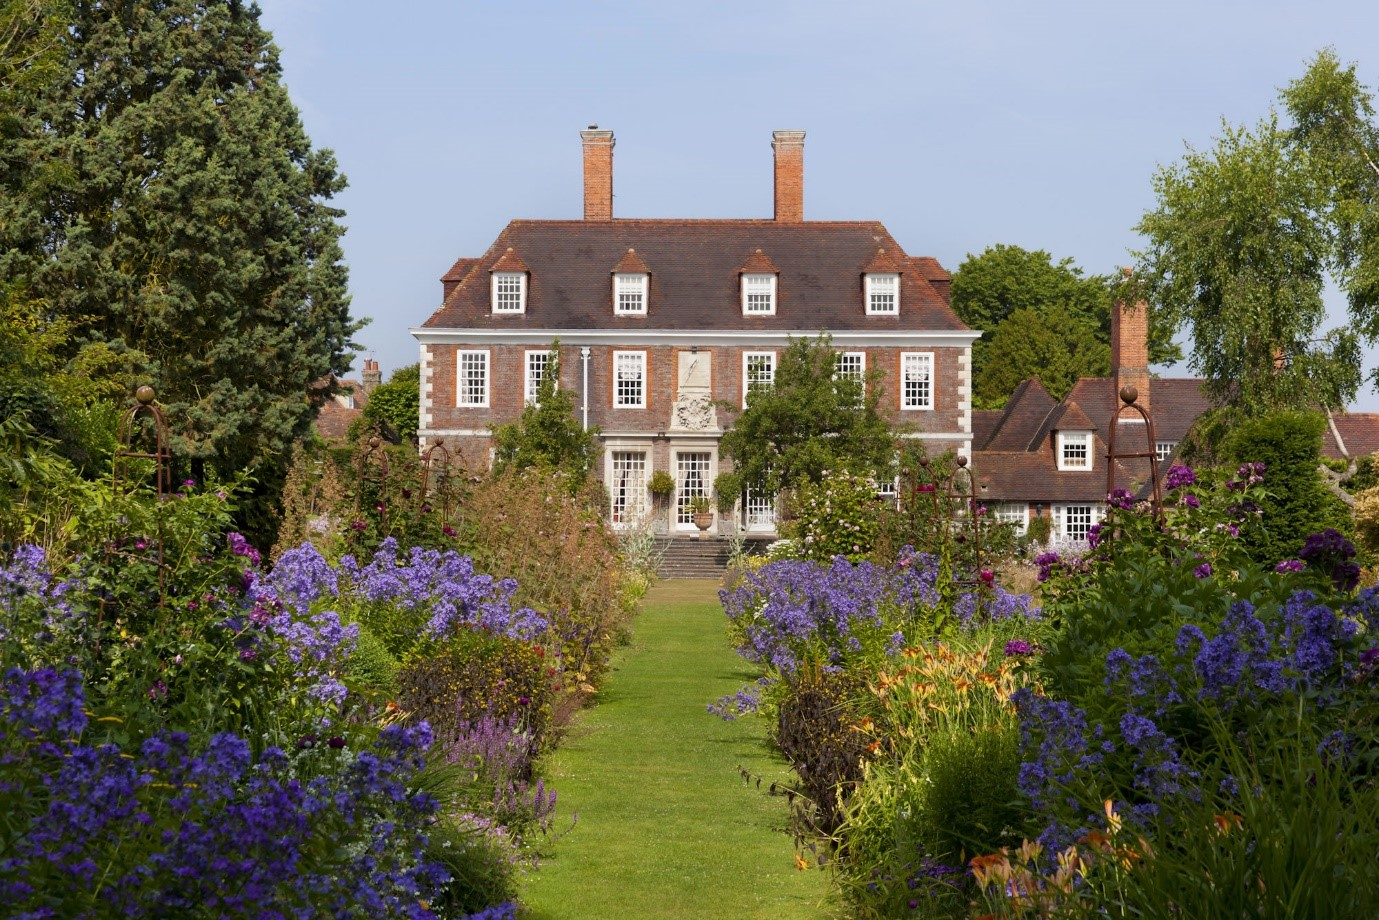 The Salutation wedding venue in Kent